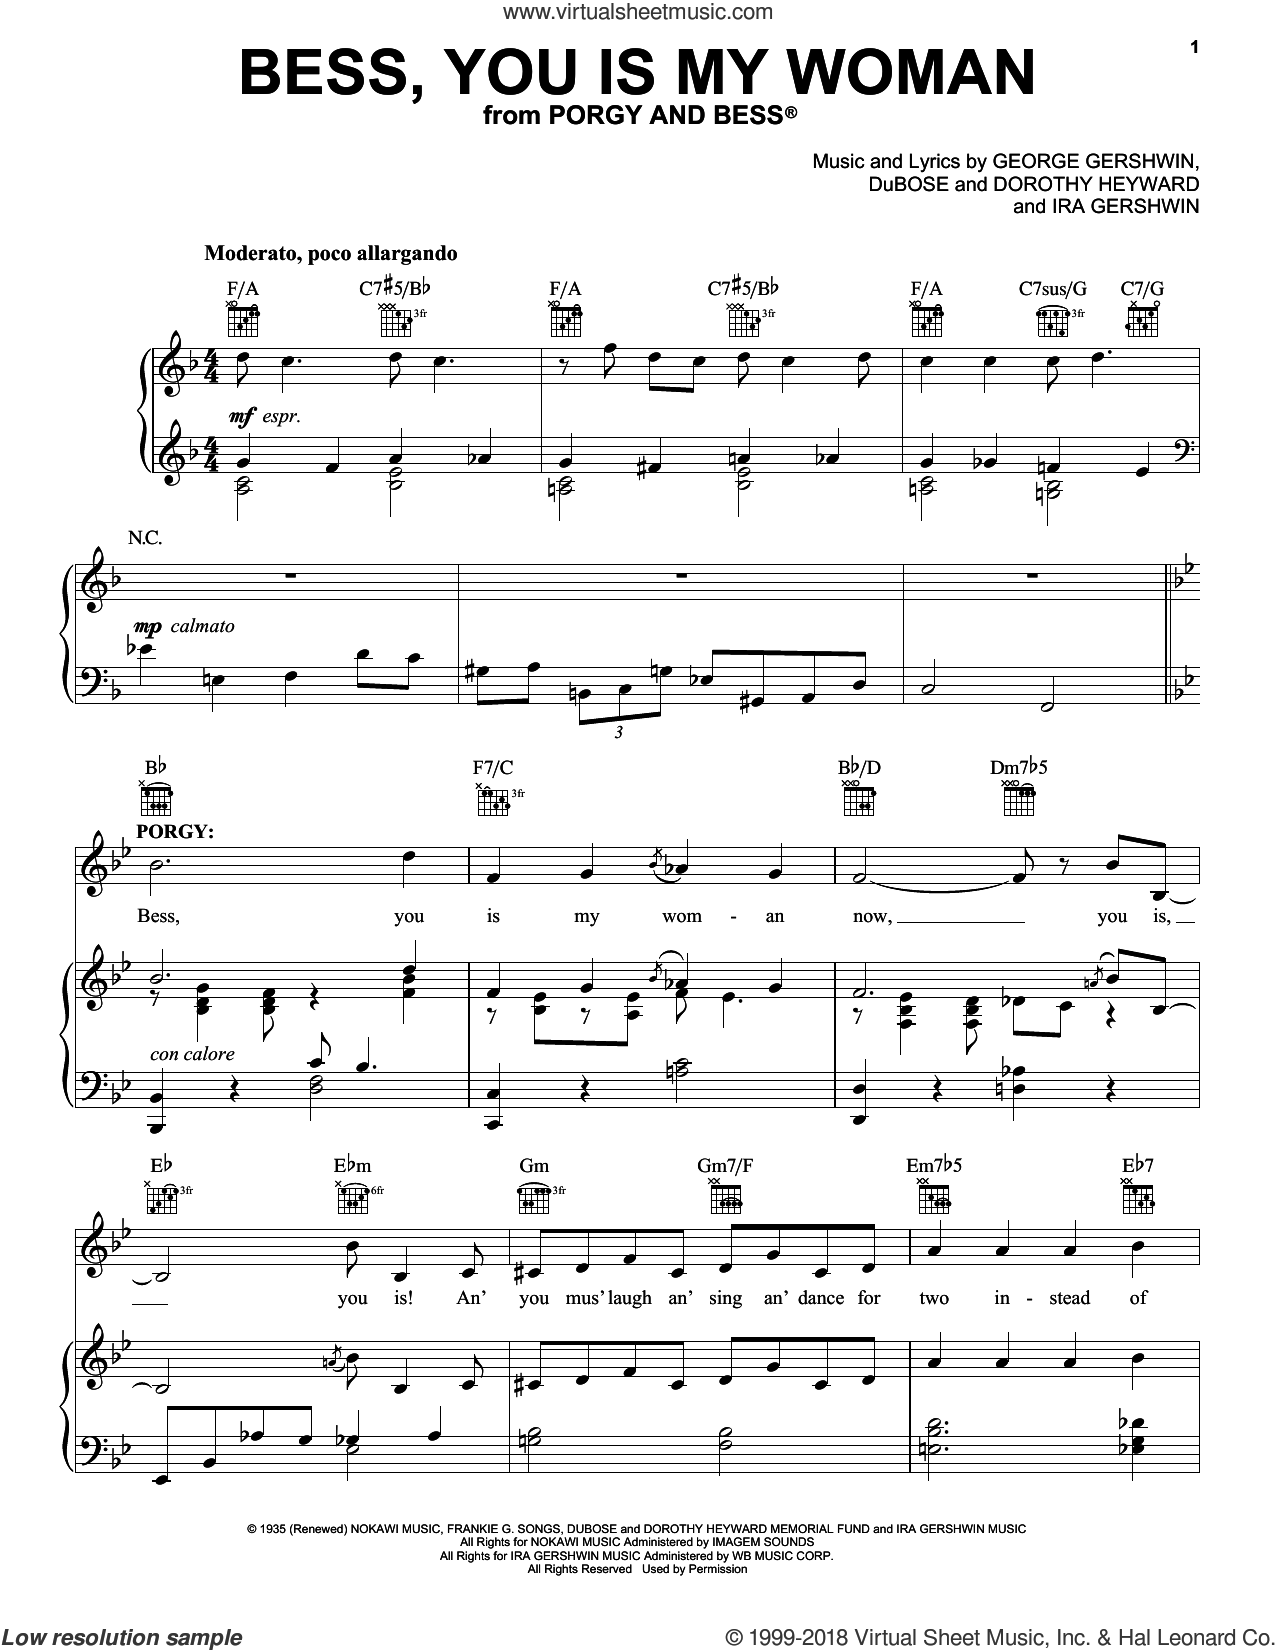 Bess, You Is My Woman sheet music for voice, piano or guitar by DuBose Heyward